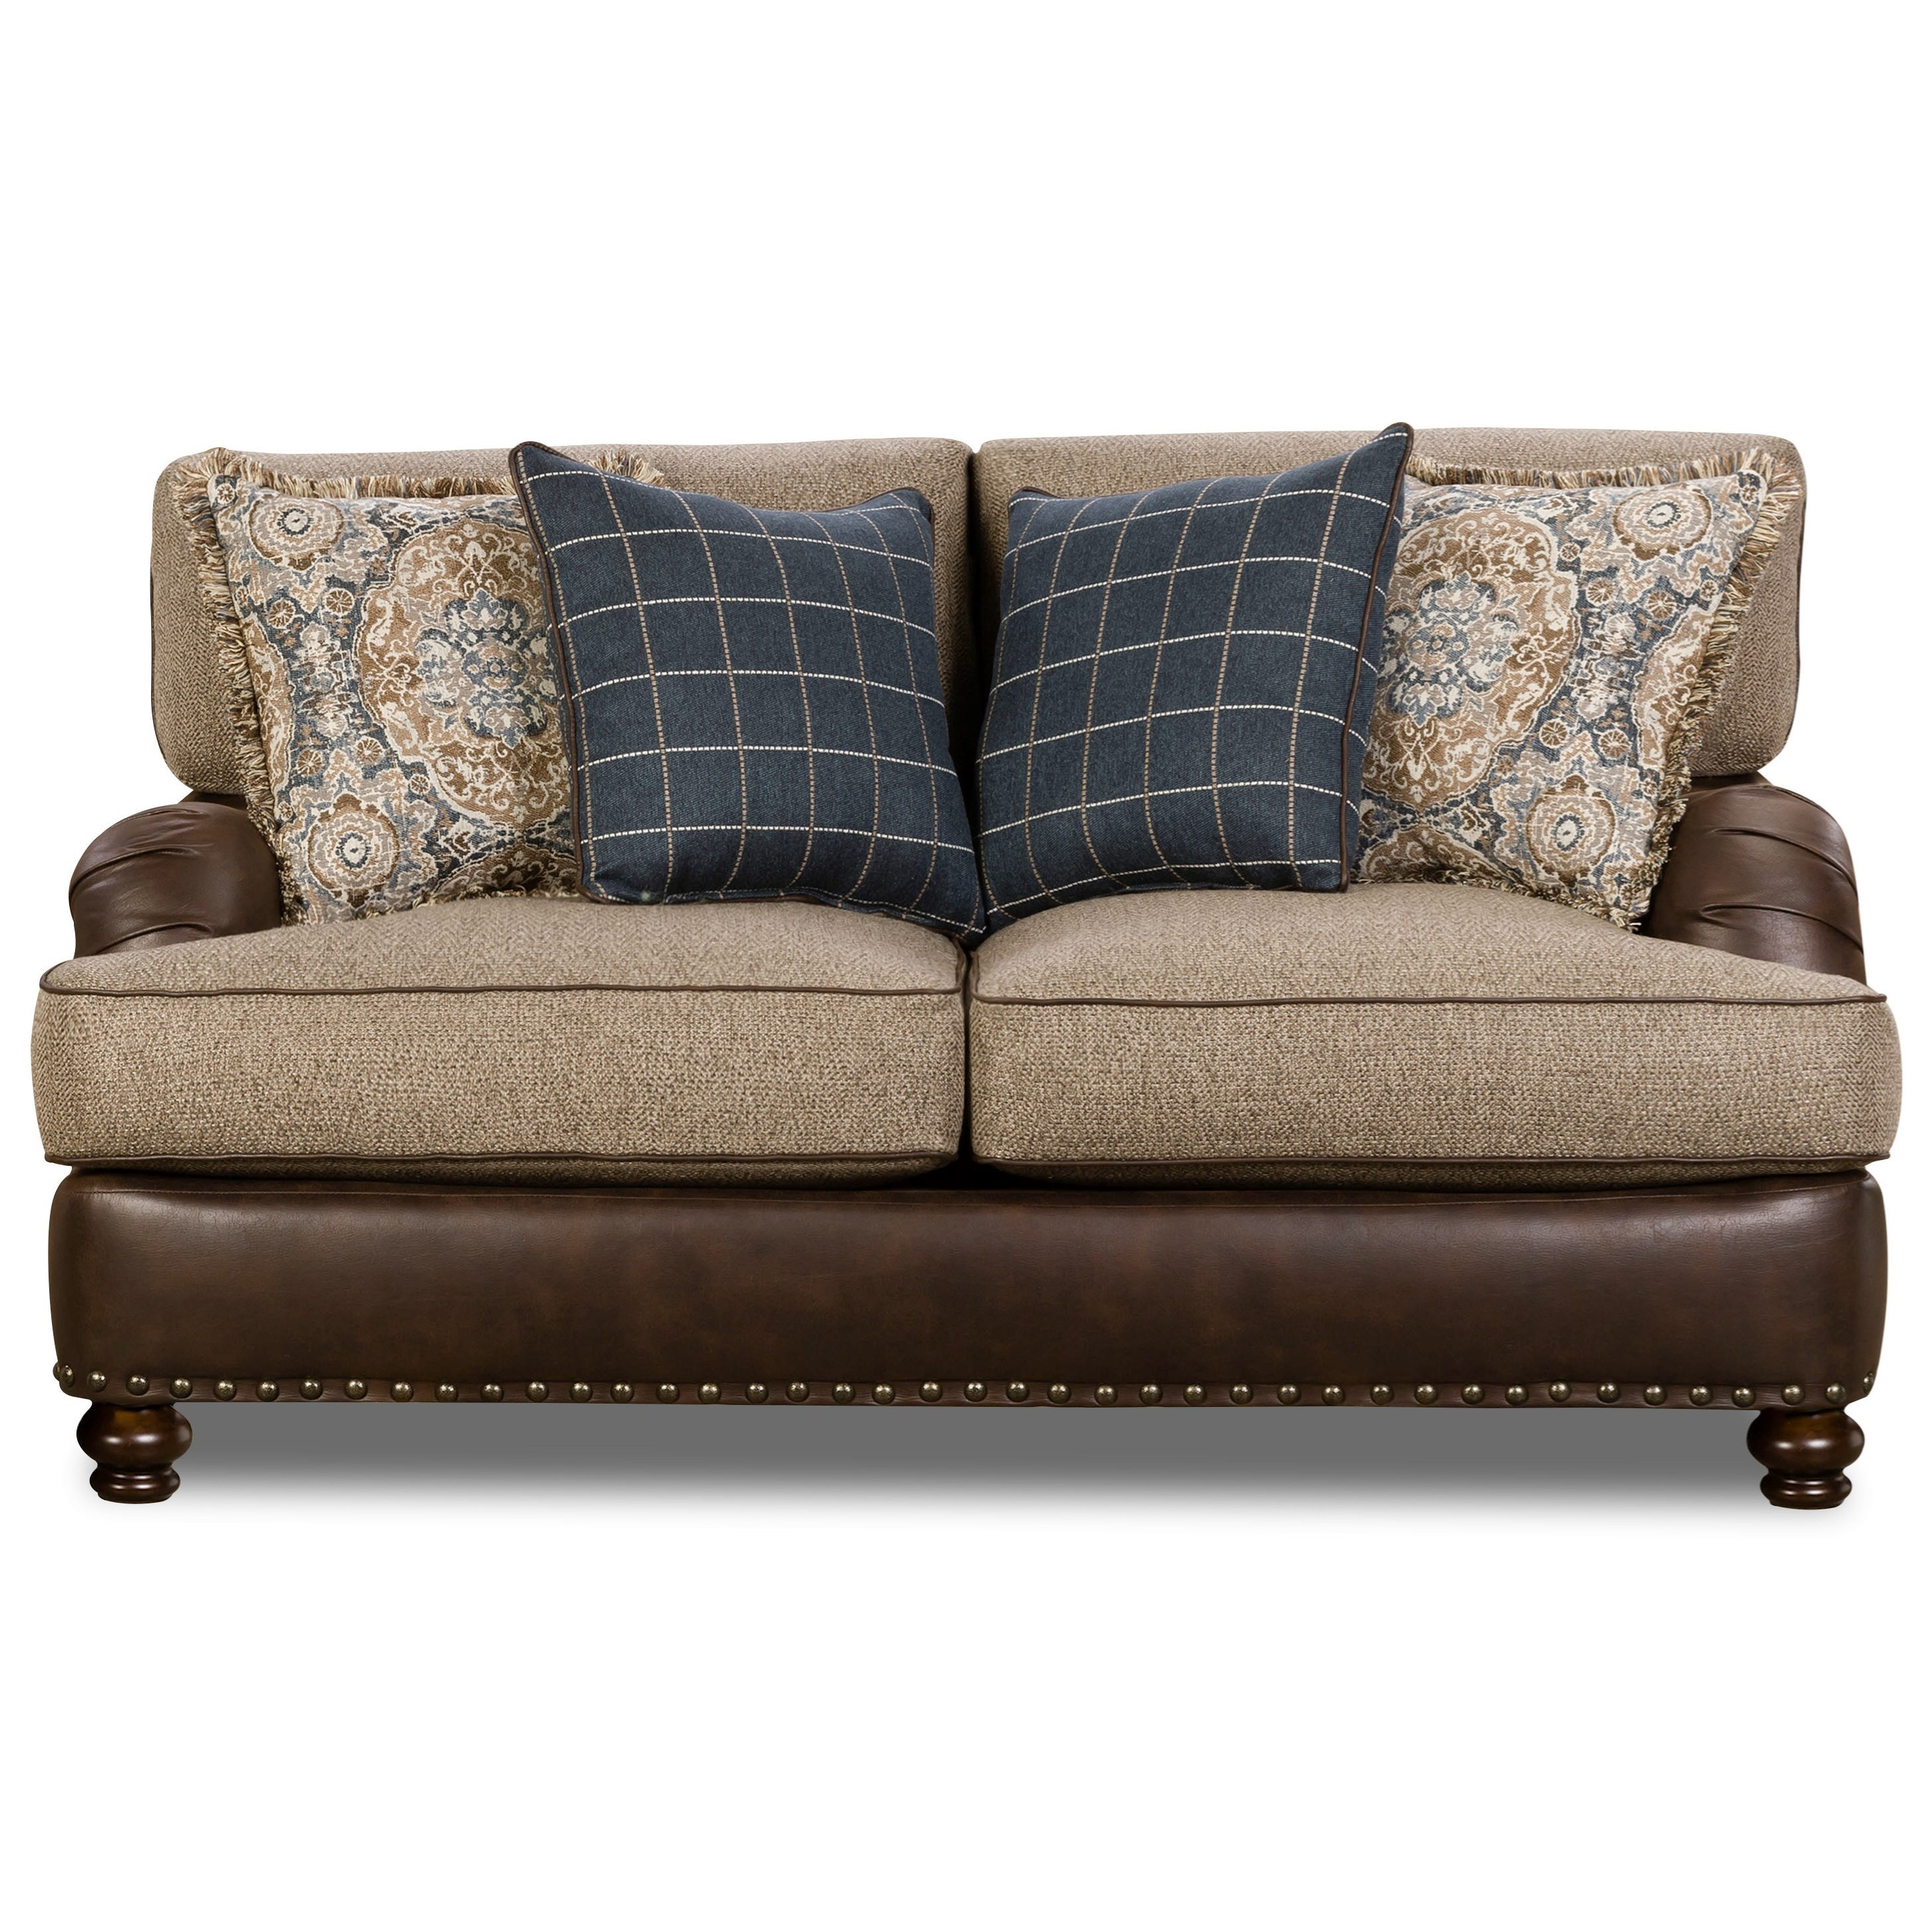 2000 Loveseat by Corinthian at Story & Lee Furniture